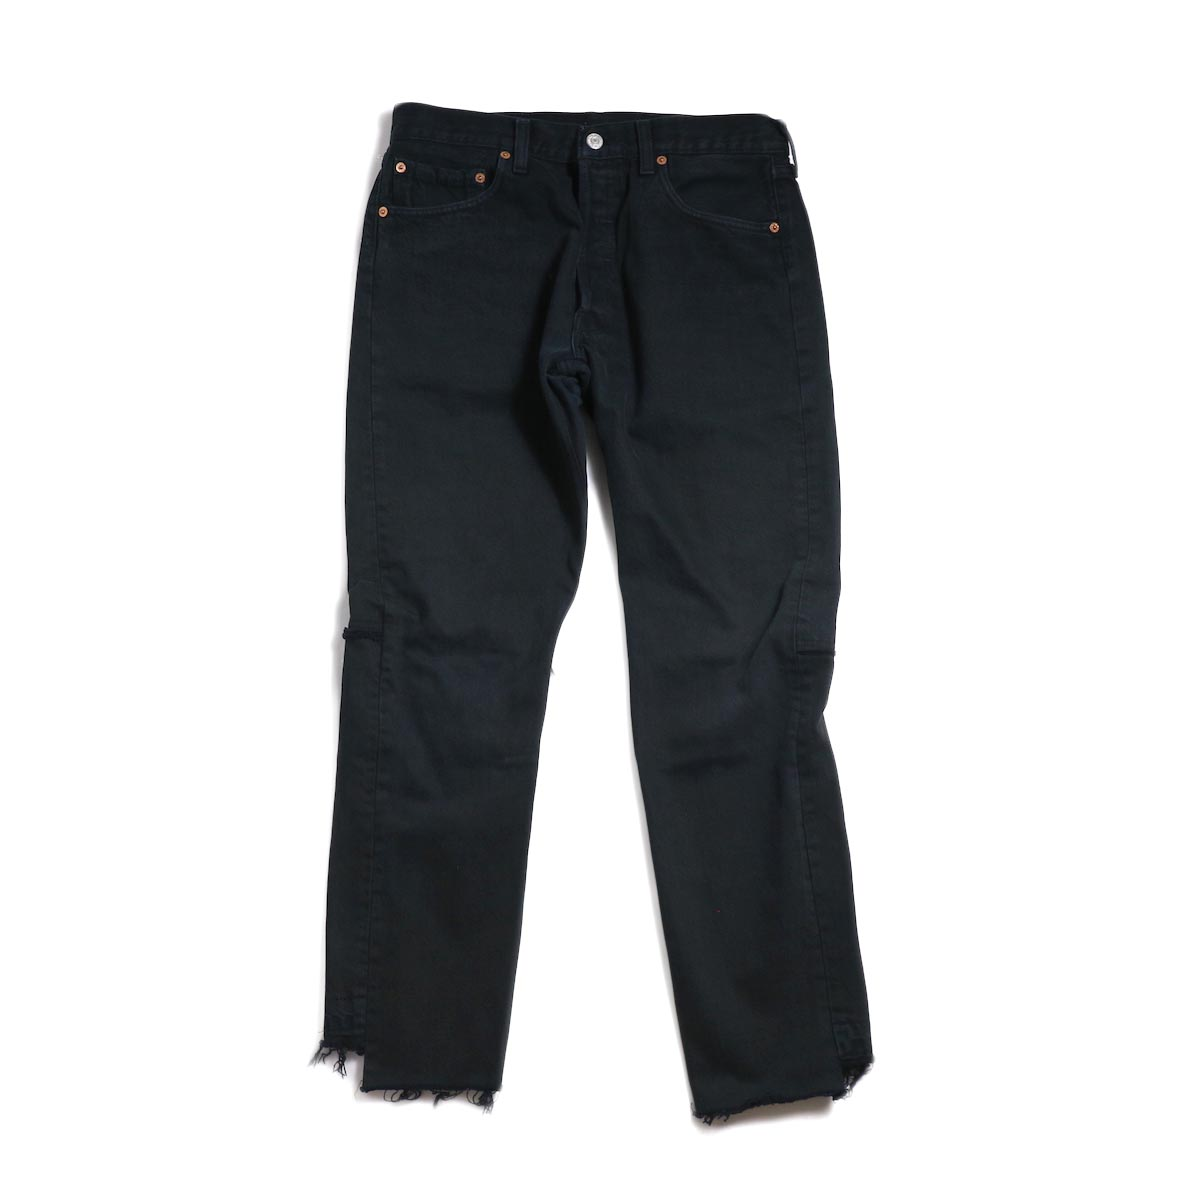 OLD PARK / Back Flare Jeans -Black Msize (E)